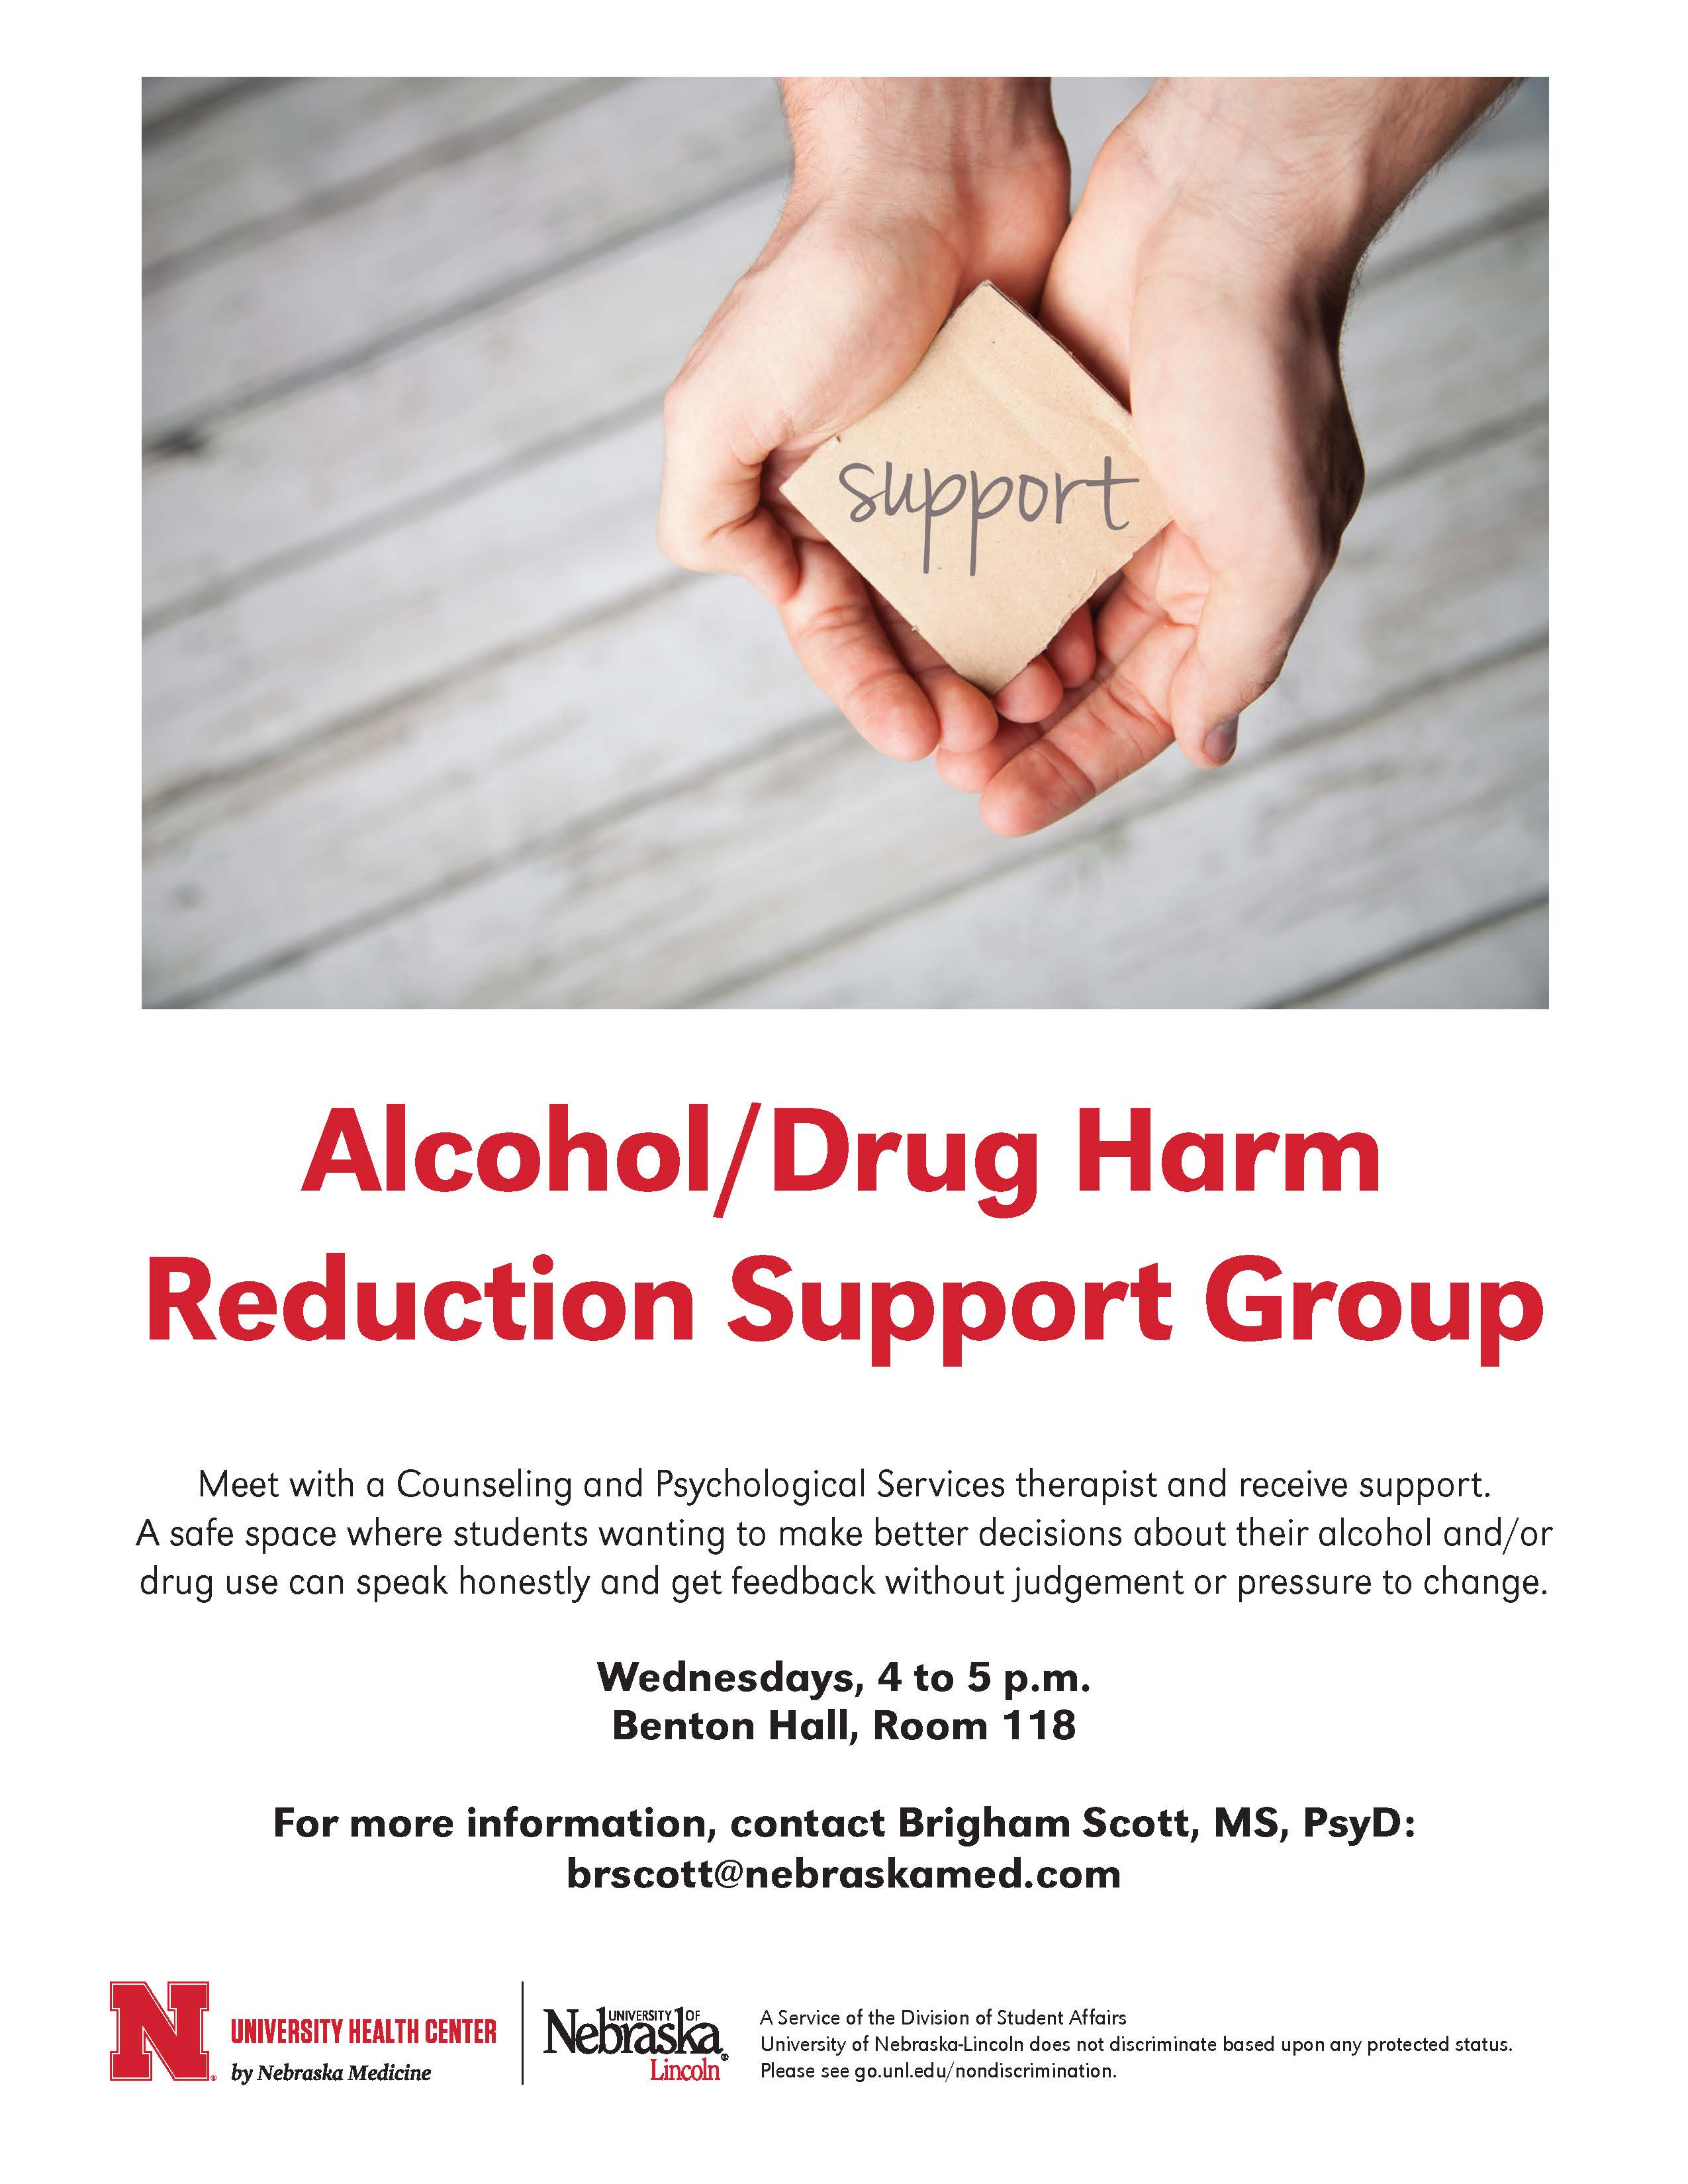 Alcohol/Drug Harm Reduction Support Group flyer